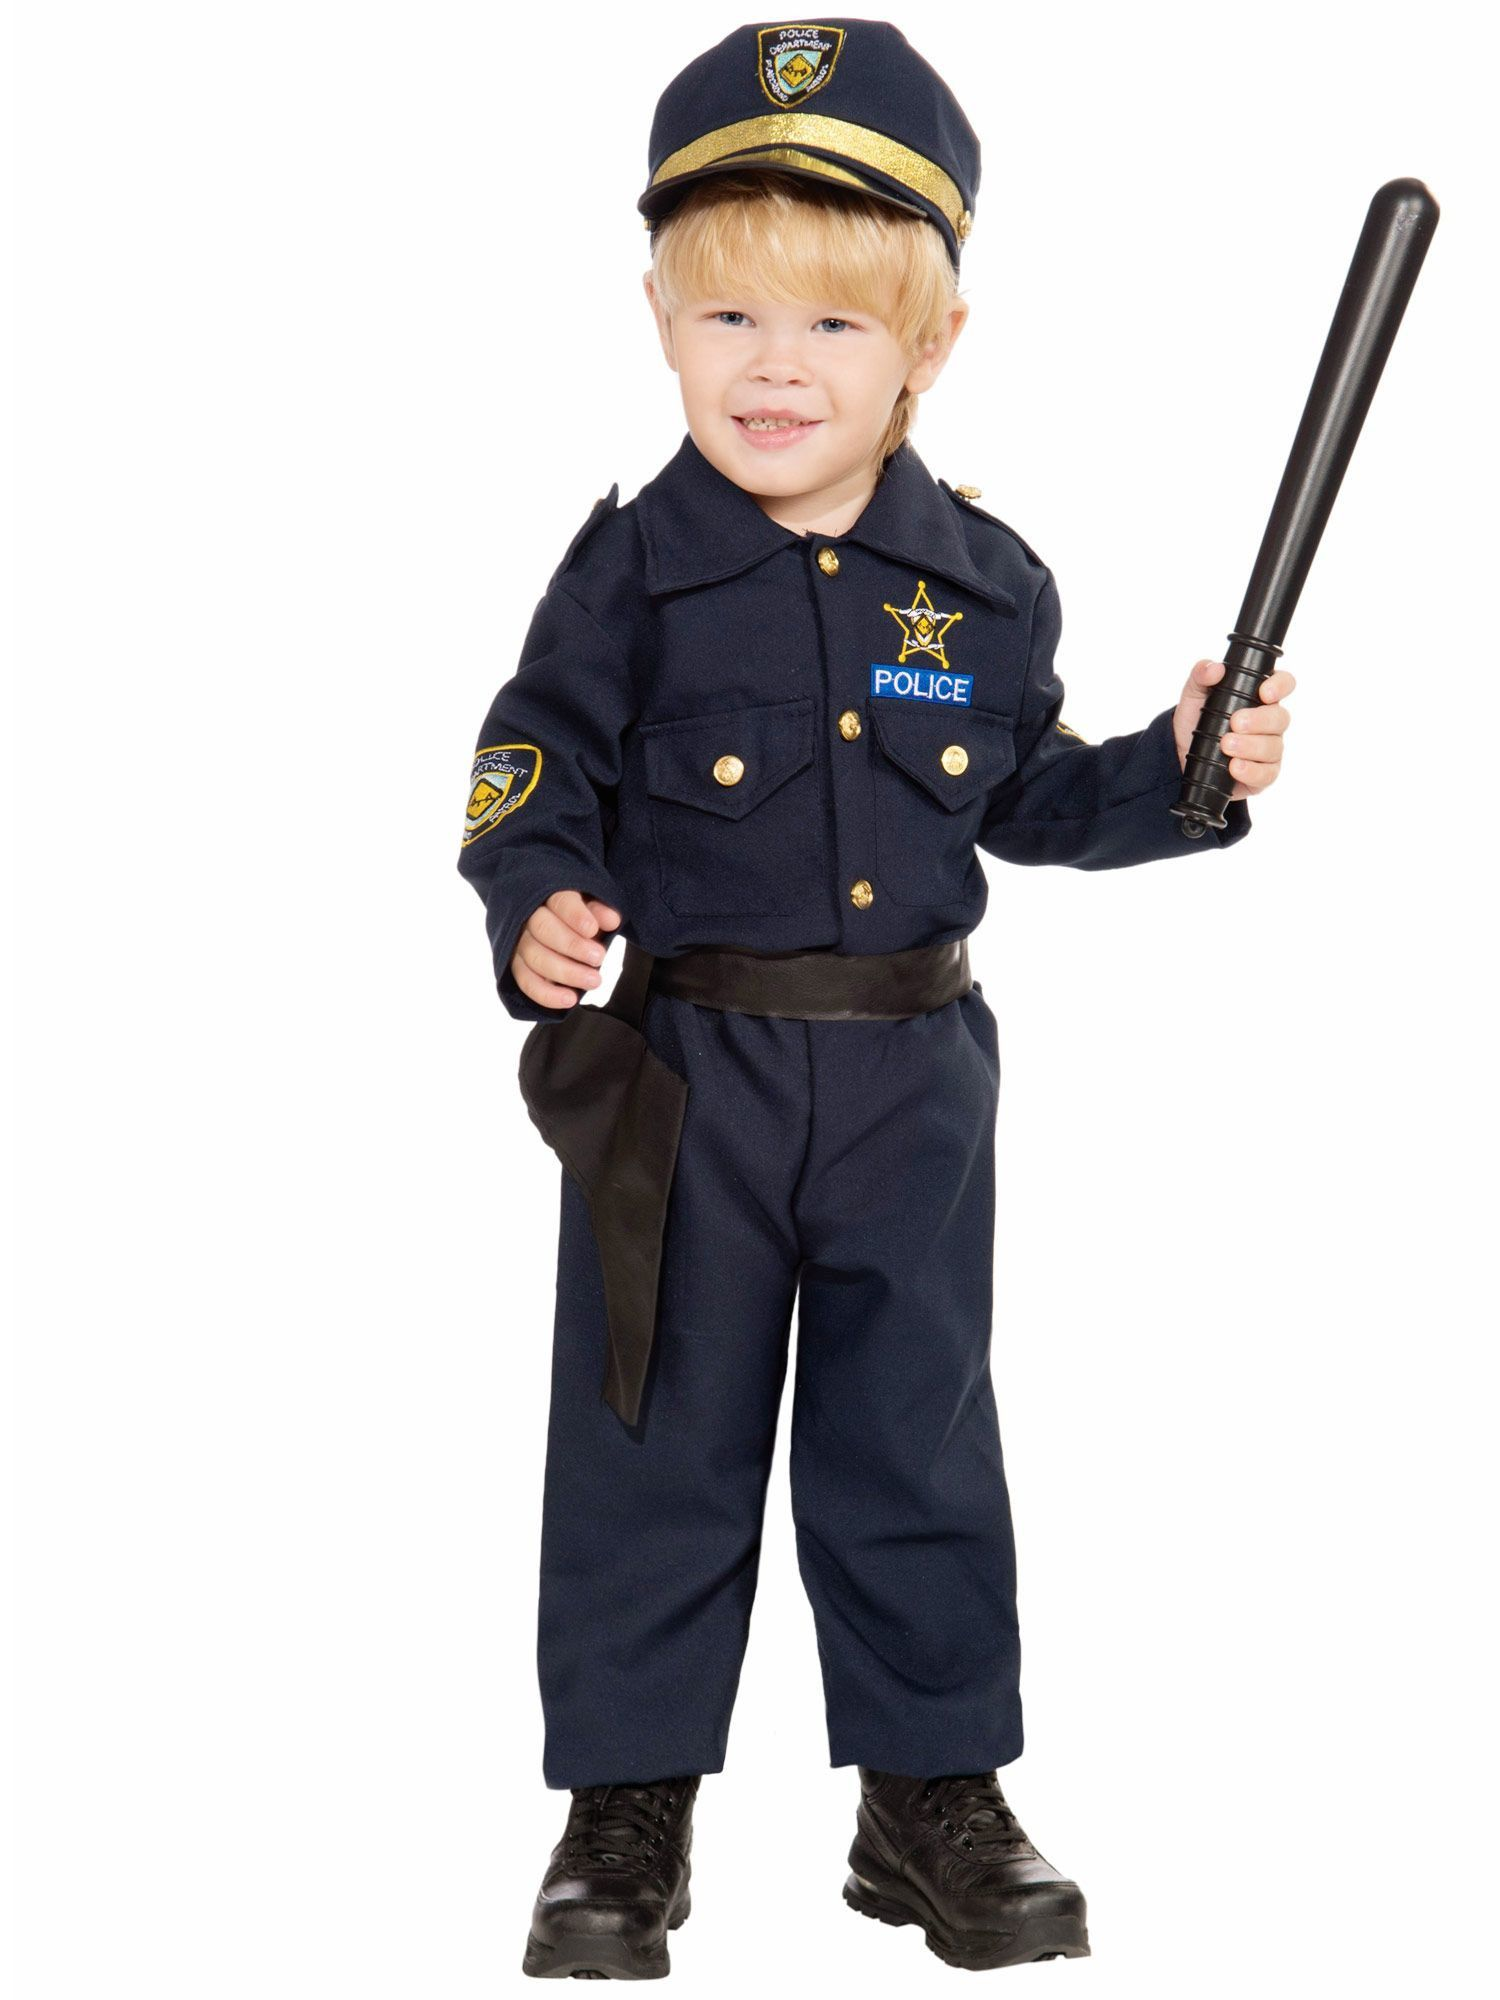 Police Boy Toddler Costume  sc 1 st  Wholesale Halloween Costumes & Toddler Police Costume - Wholesale Cop Costumes for Babies